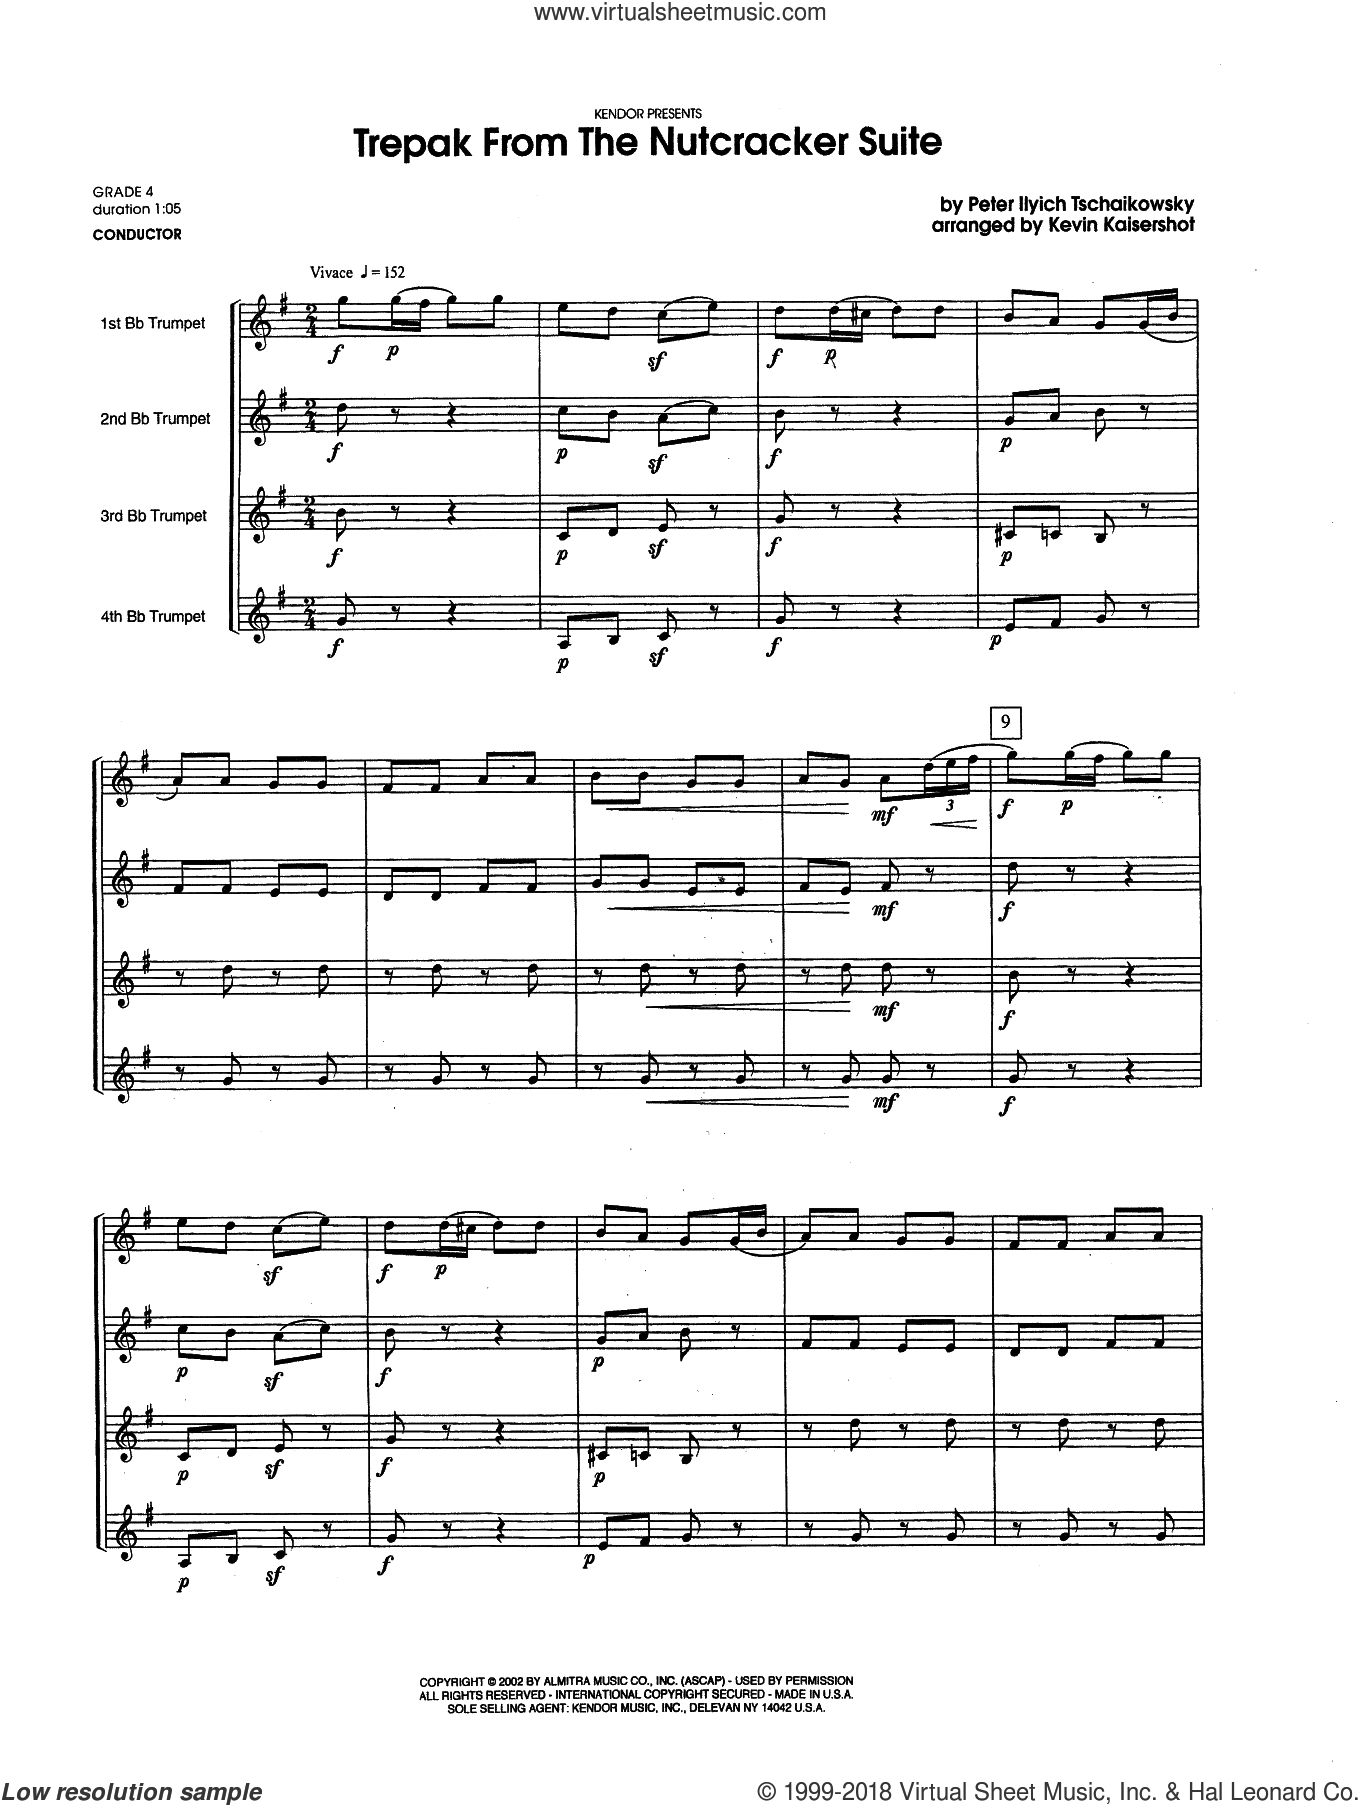 Trepak From The Nutcracker Suite (COMPLETE) sheet music for four trumpets by Kevin Kaisershot, Pyotr Ilyich Tchaikovsky and Tschaikowsky, classical score, intermediate. Score Image Preview.